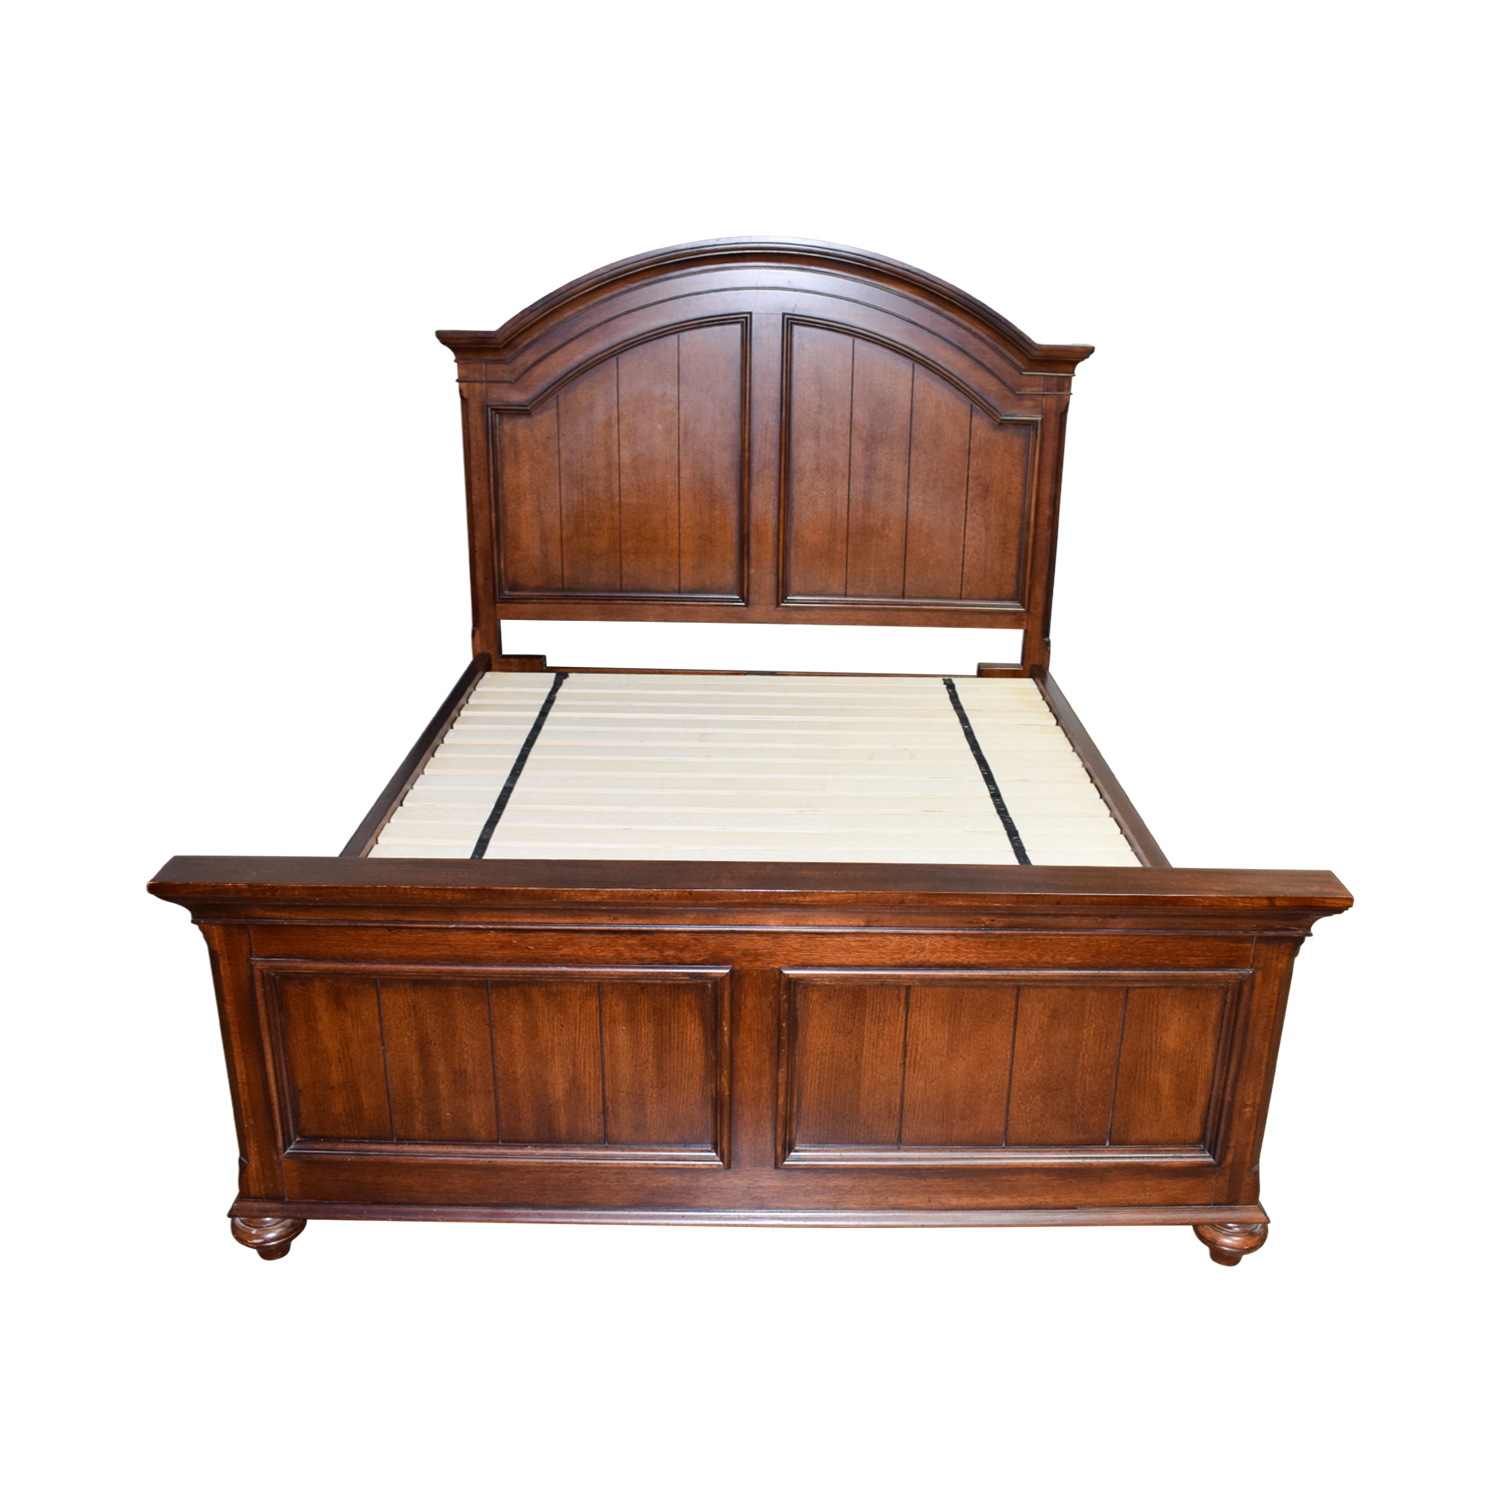 Raymour & Flanigan Raymour & Flanigan Canyon Creek Queen Storage Platform Bed coupon